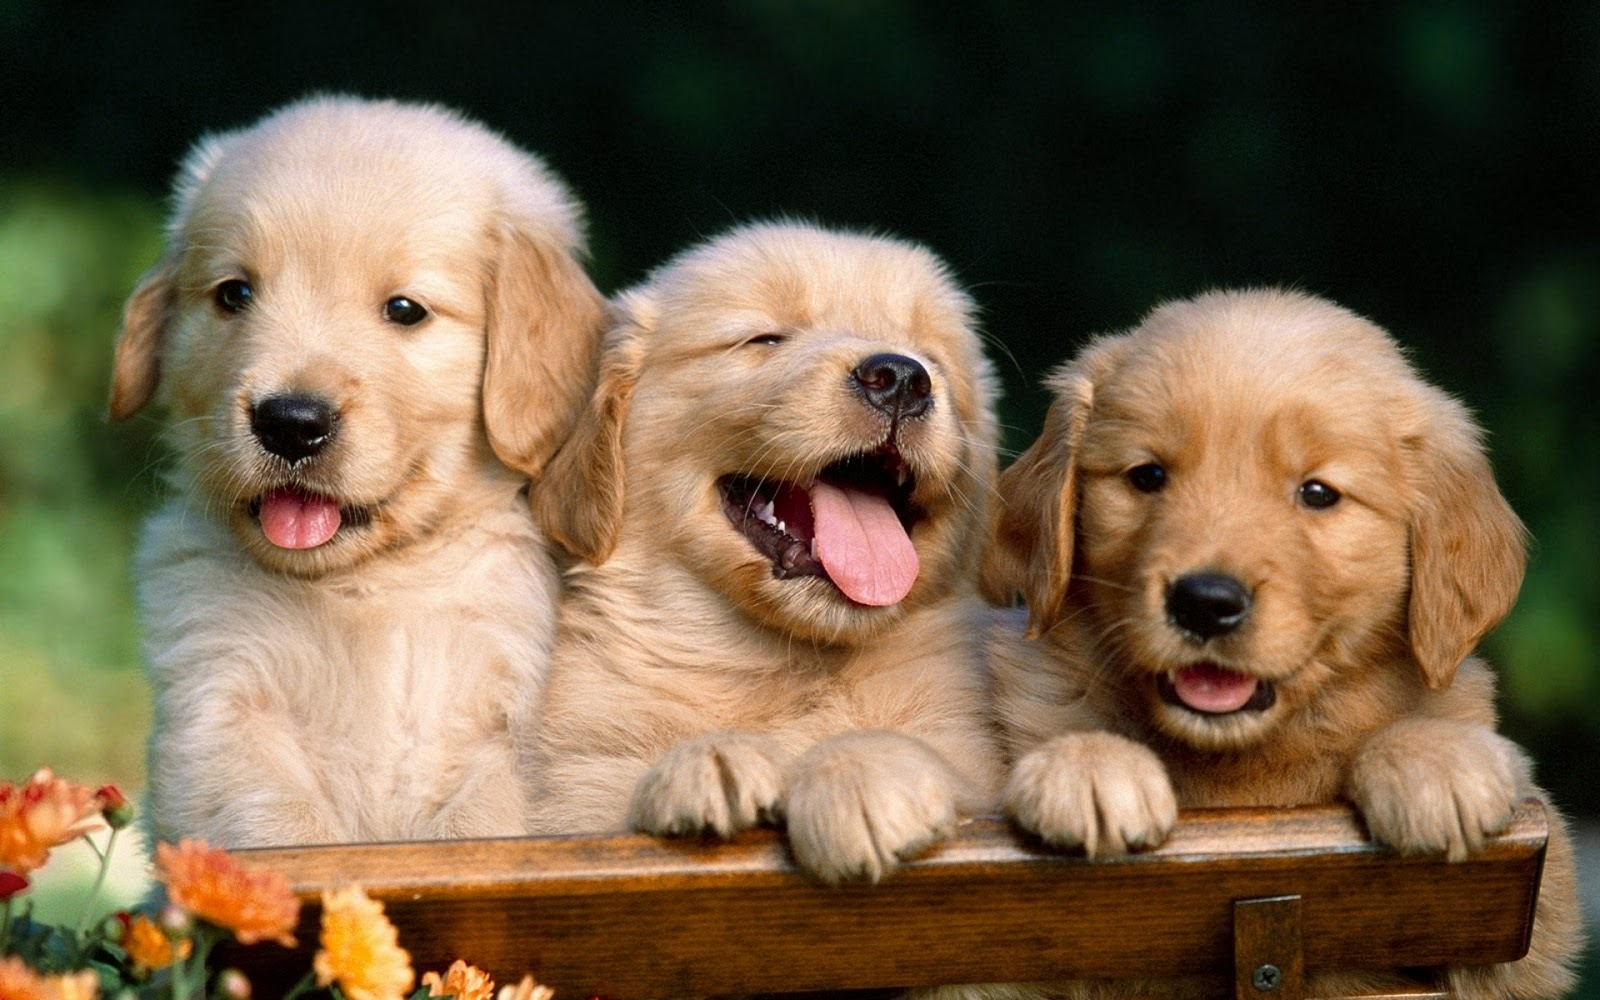 Cute puppies photo dog wallpapers backgrounds dogs wallpapers cute puppies photo dog wallpapers backgrounds dogs wallpapers backgrounds voltagebd Gallery